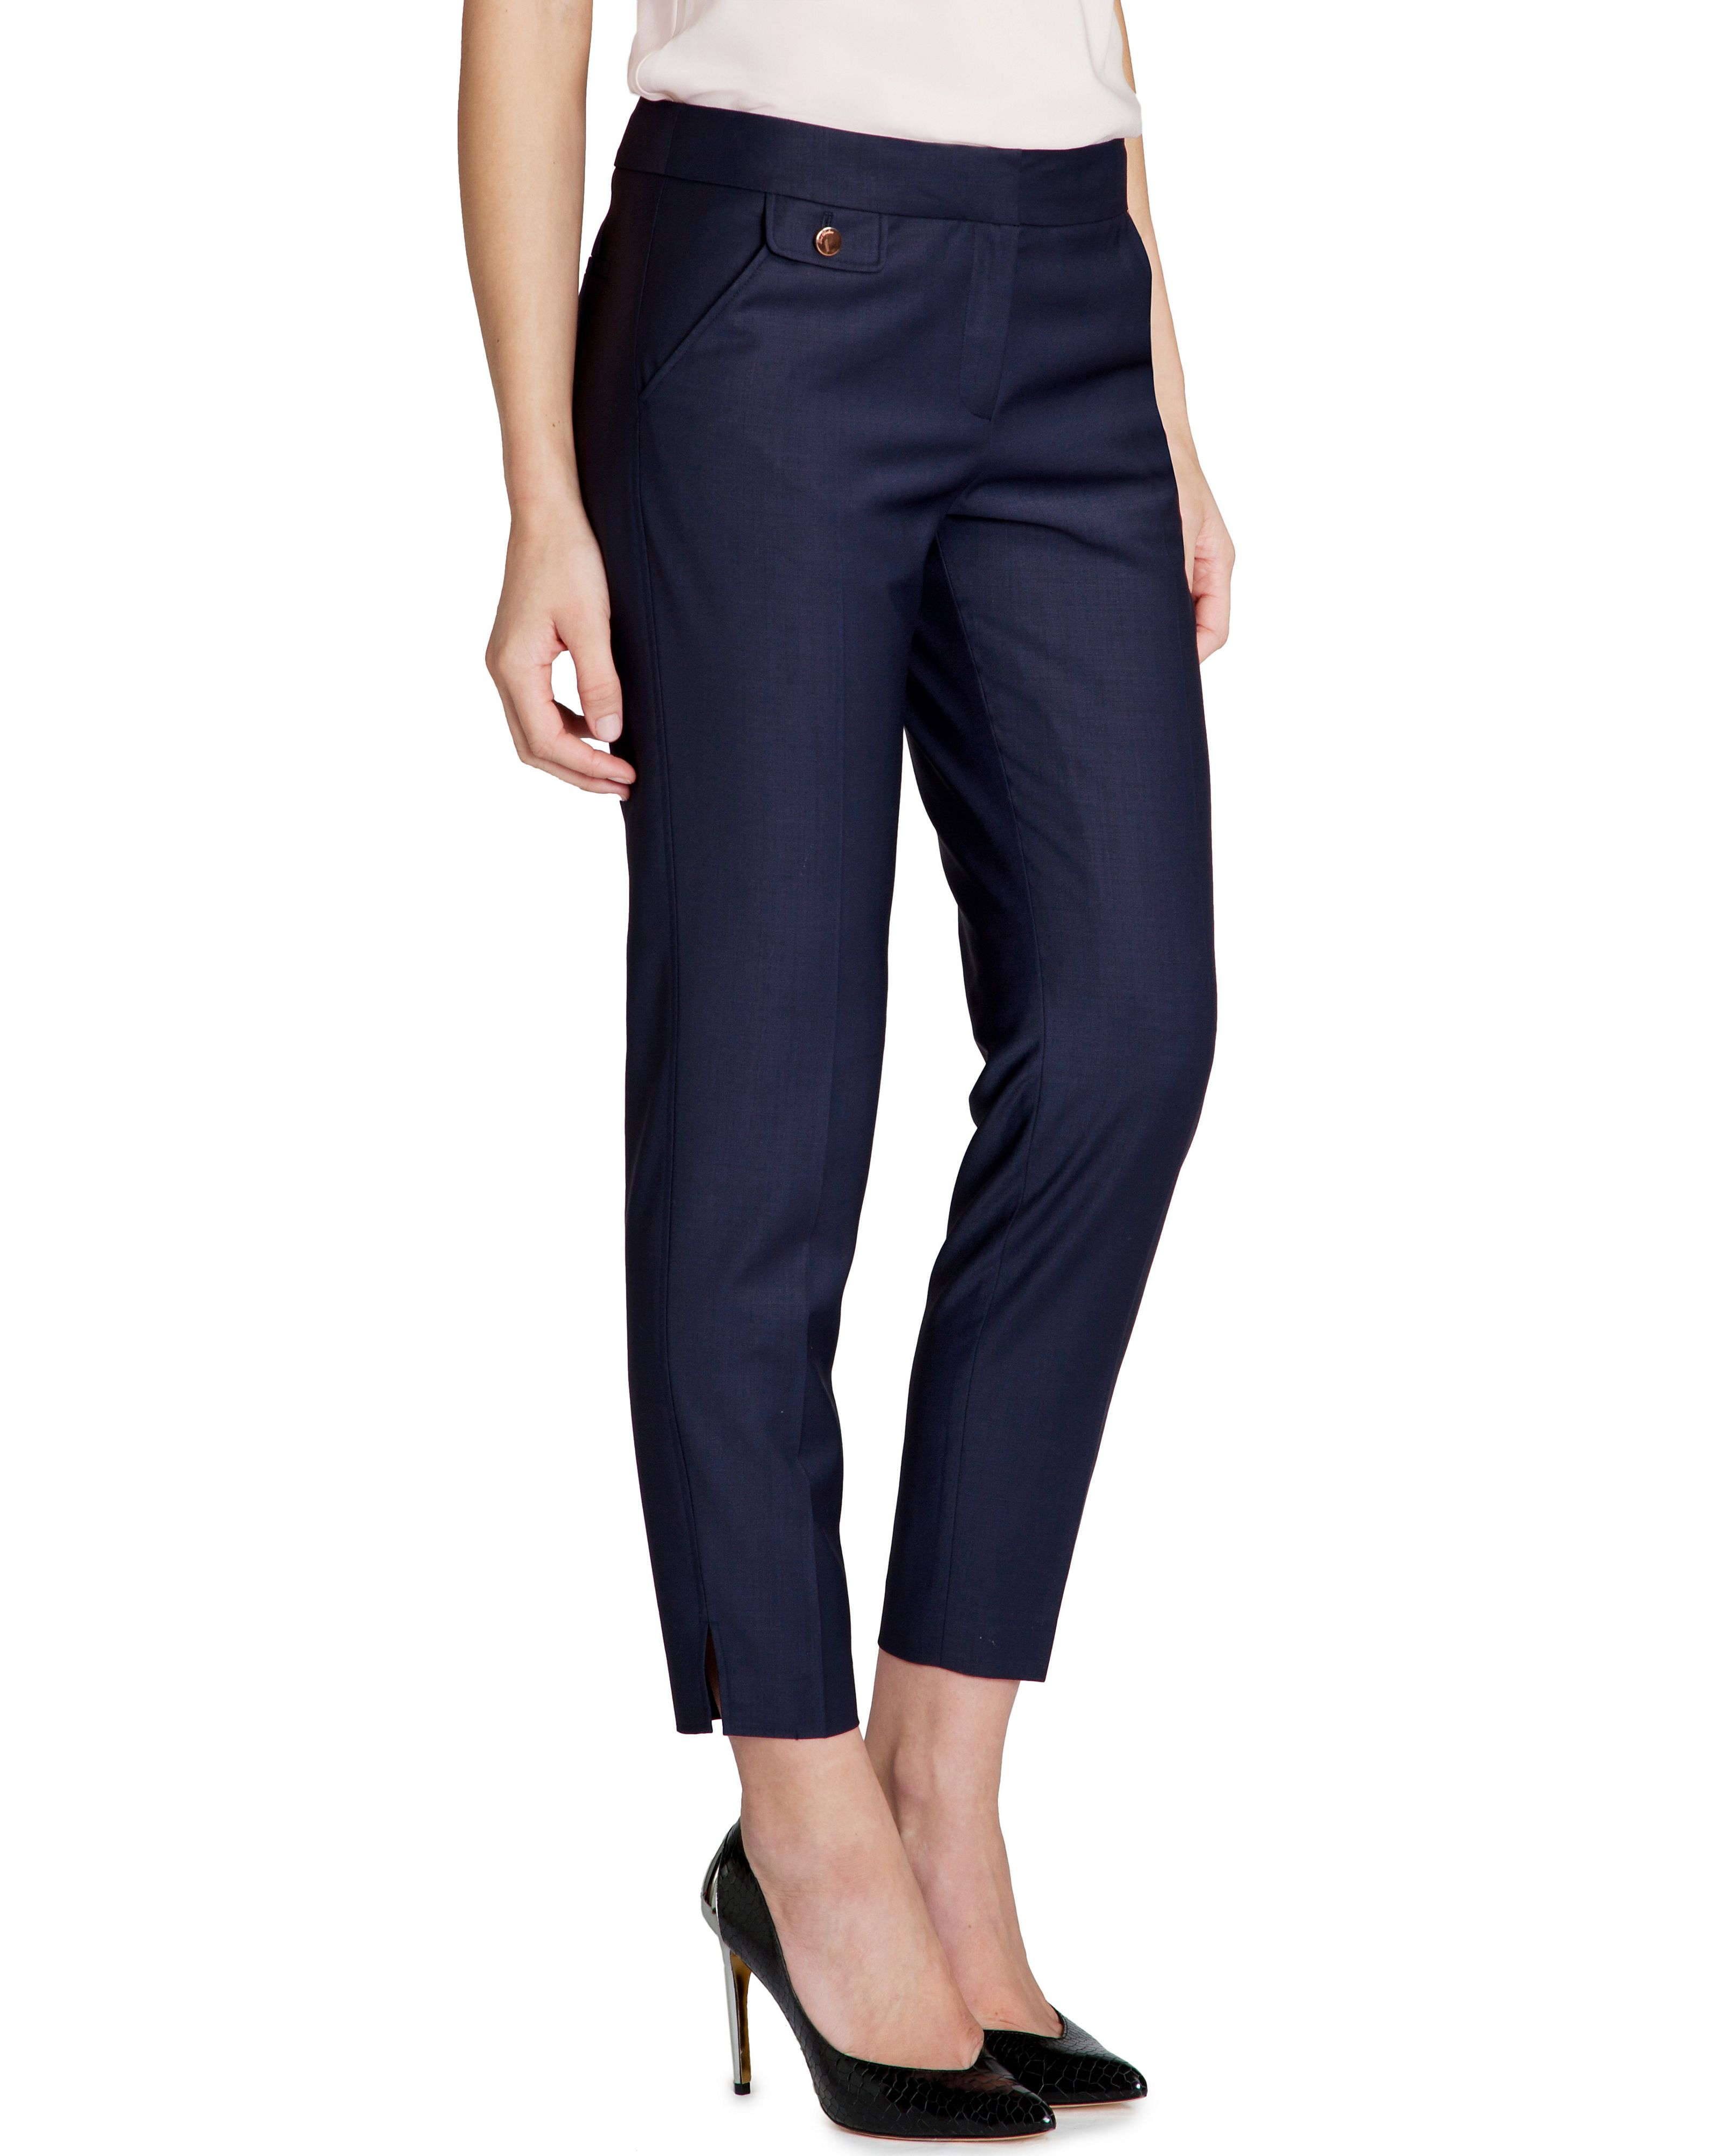 Ziviat tailored tapered trousers